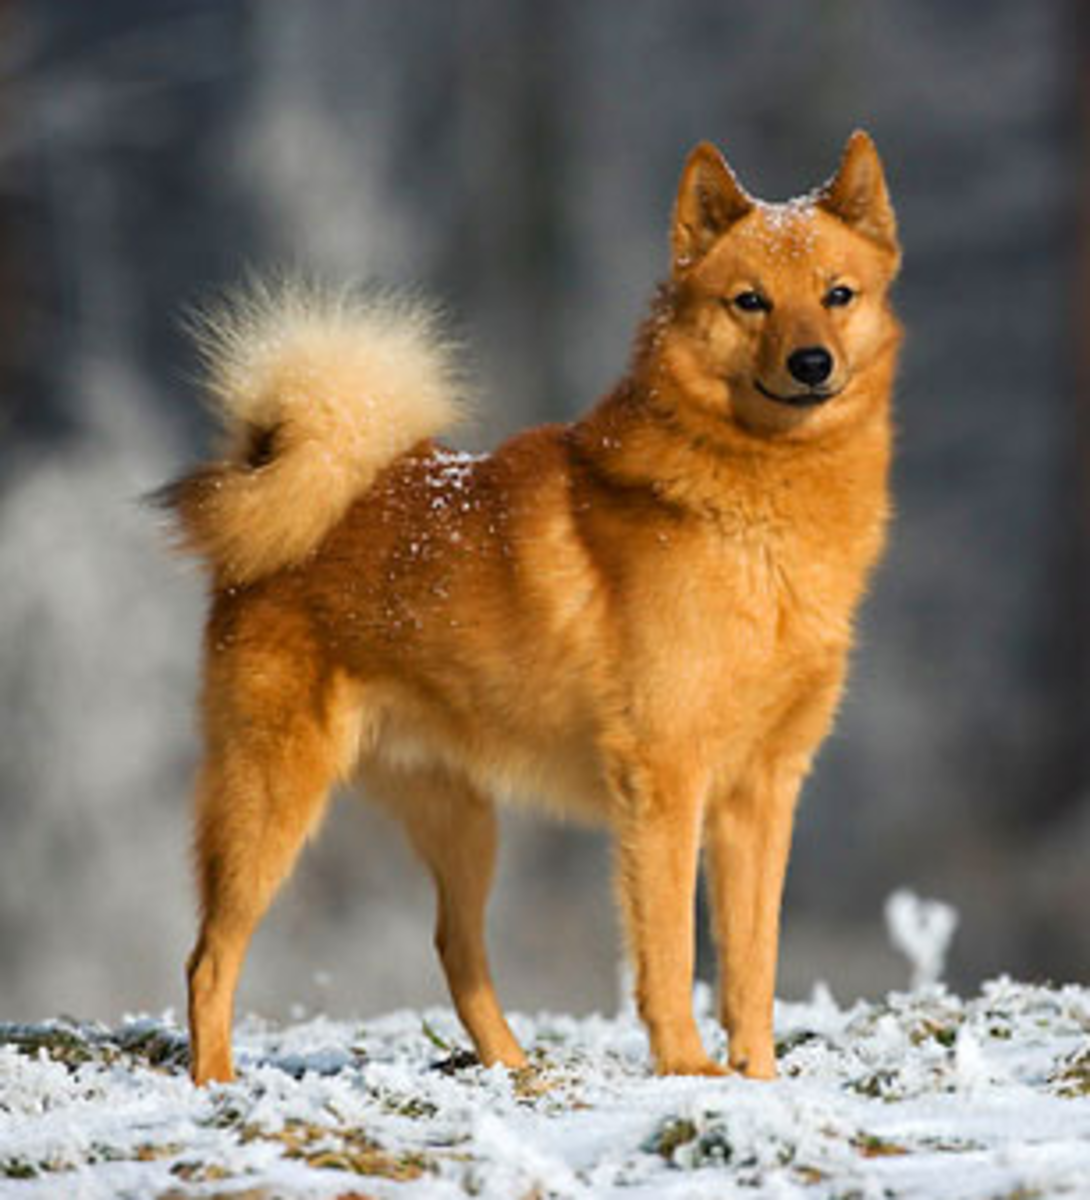 While living in Denver, Colorado; our first pet dog was a Finnish Spitz, similar to the one in the photo.